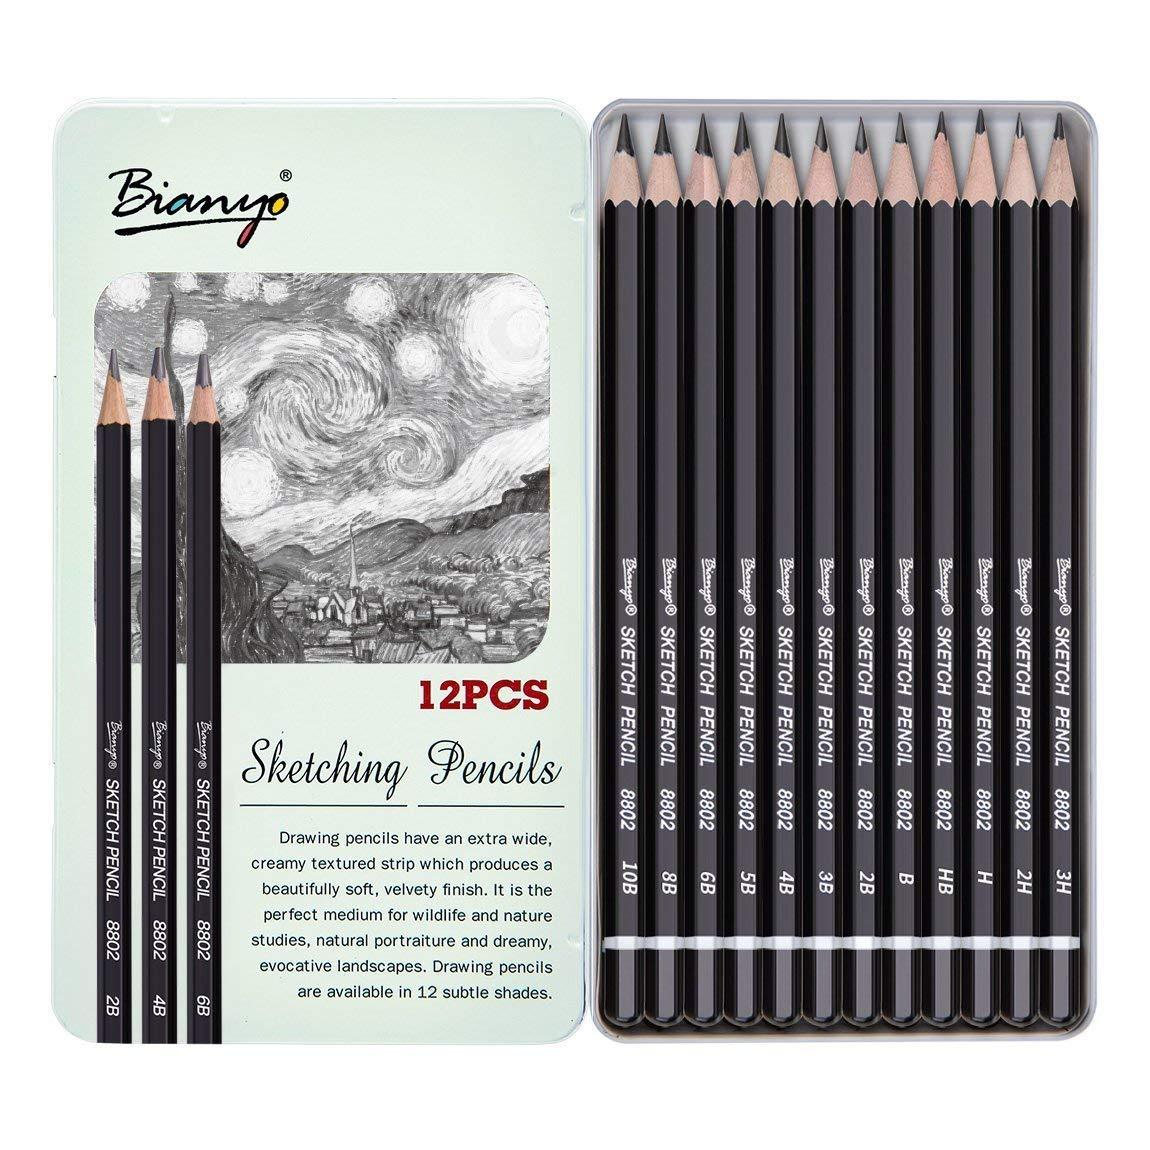 Link professional sketch and drawing pencils set art pencil 12 count 8b 2h